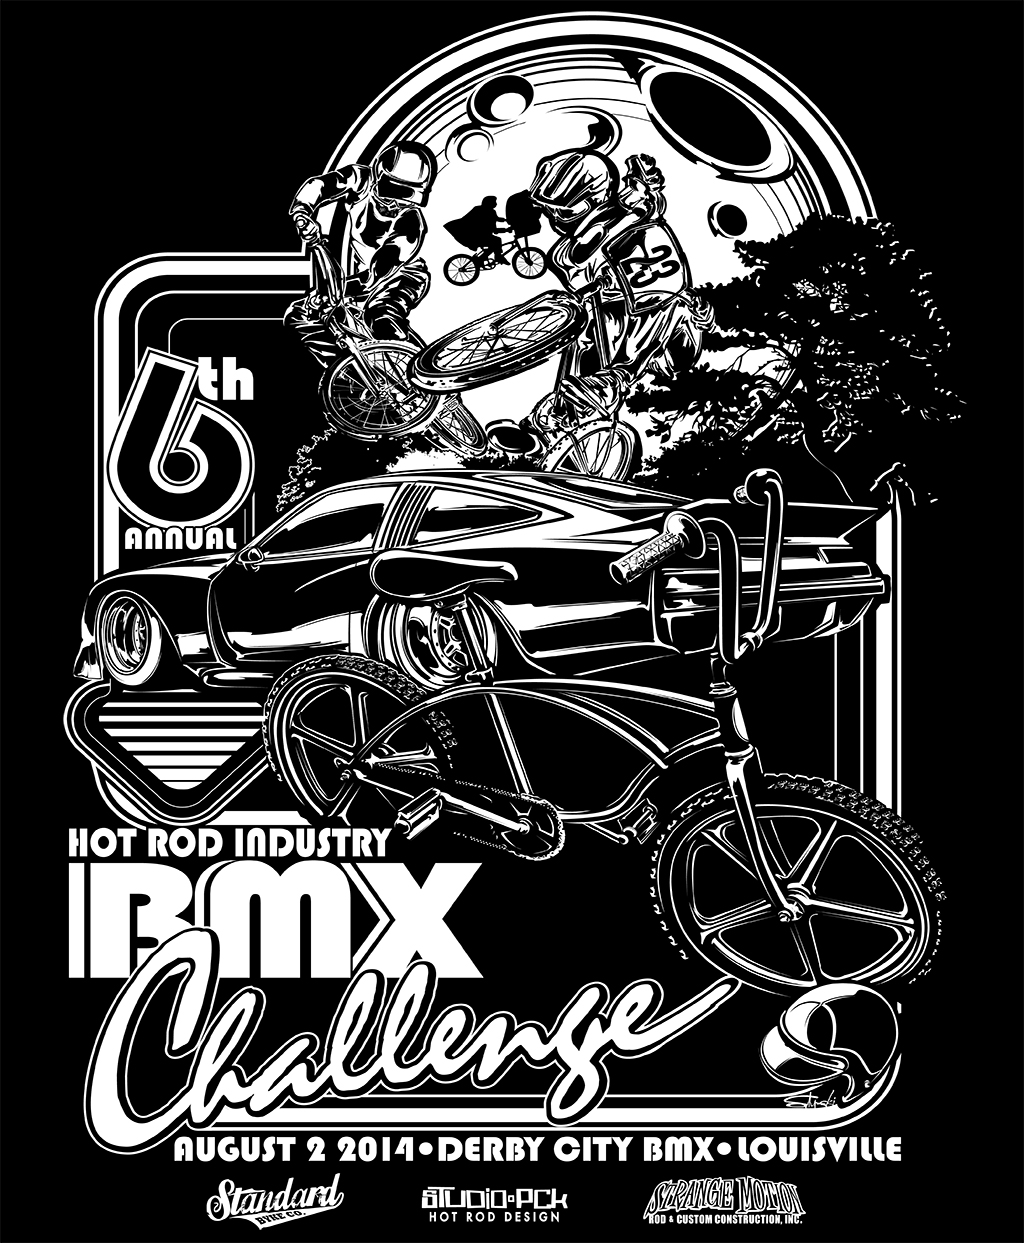 BMX-CHAL6-FINAL – The Round Six Podcast